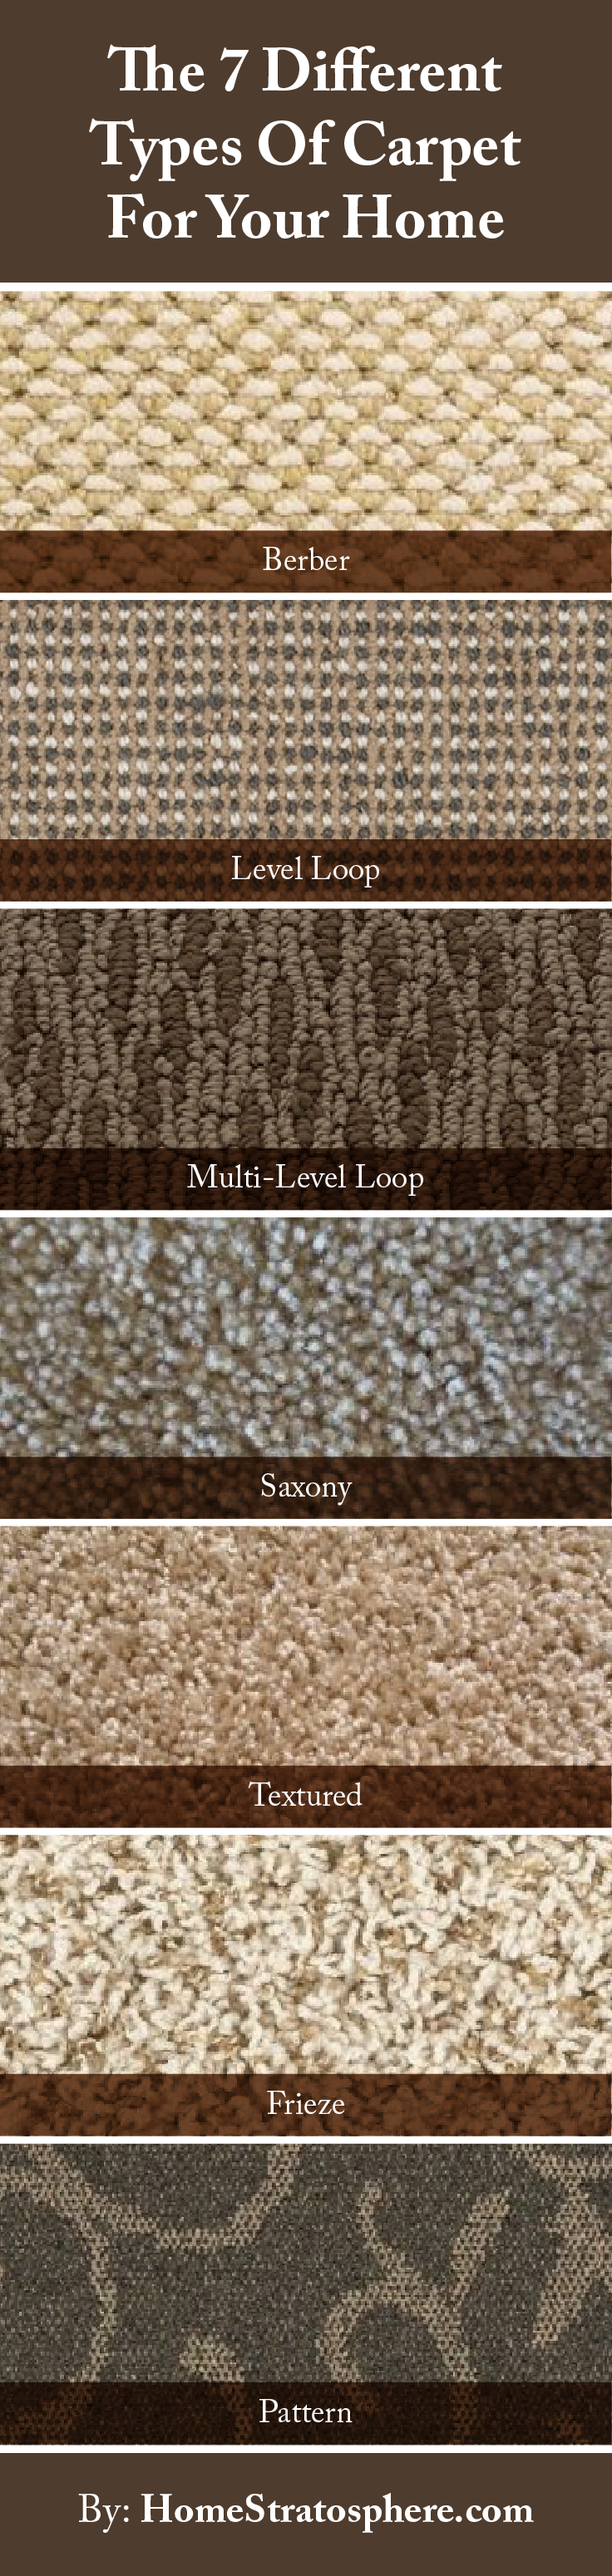 The 7 Diffe Types Of Carpet For Your Home Bedroom New Condo